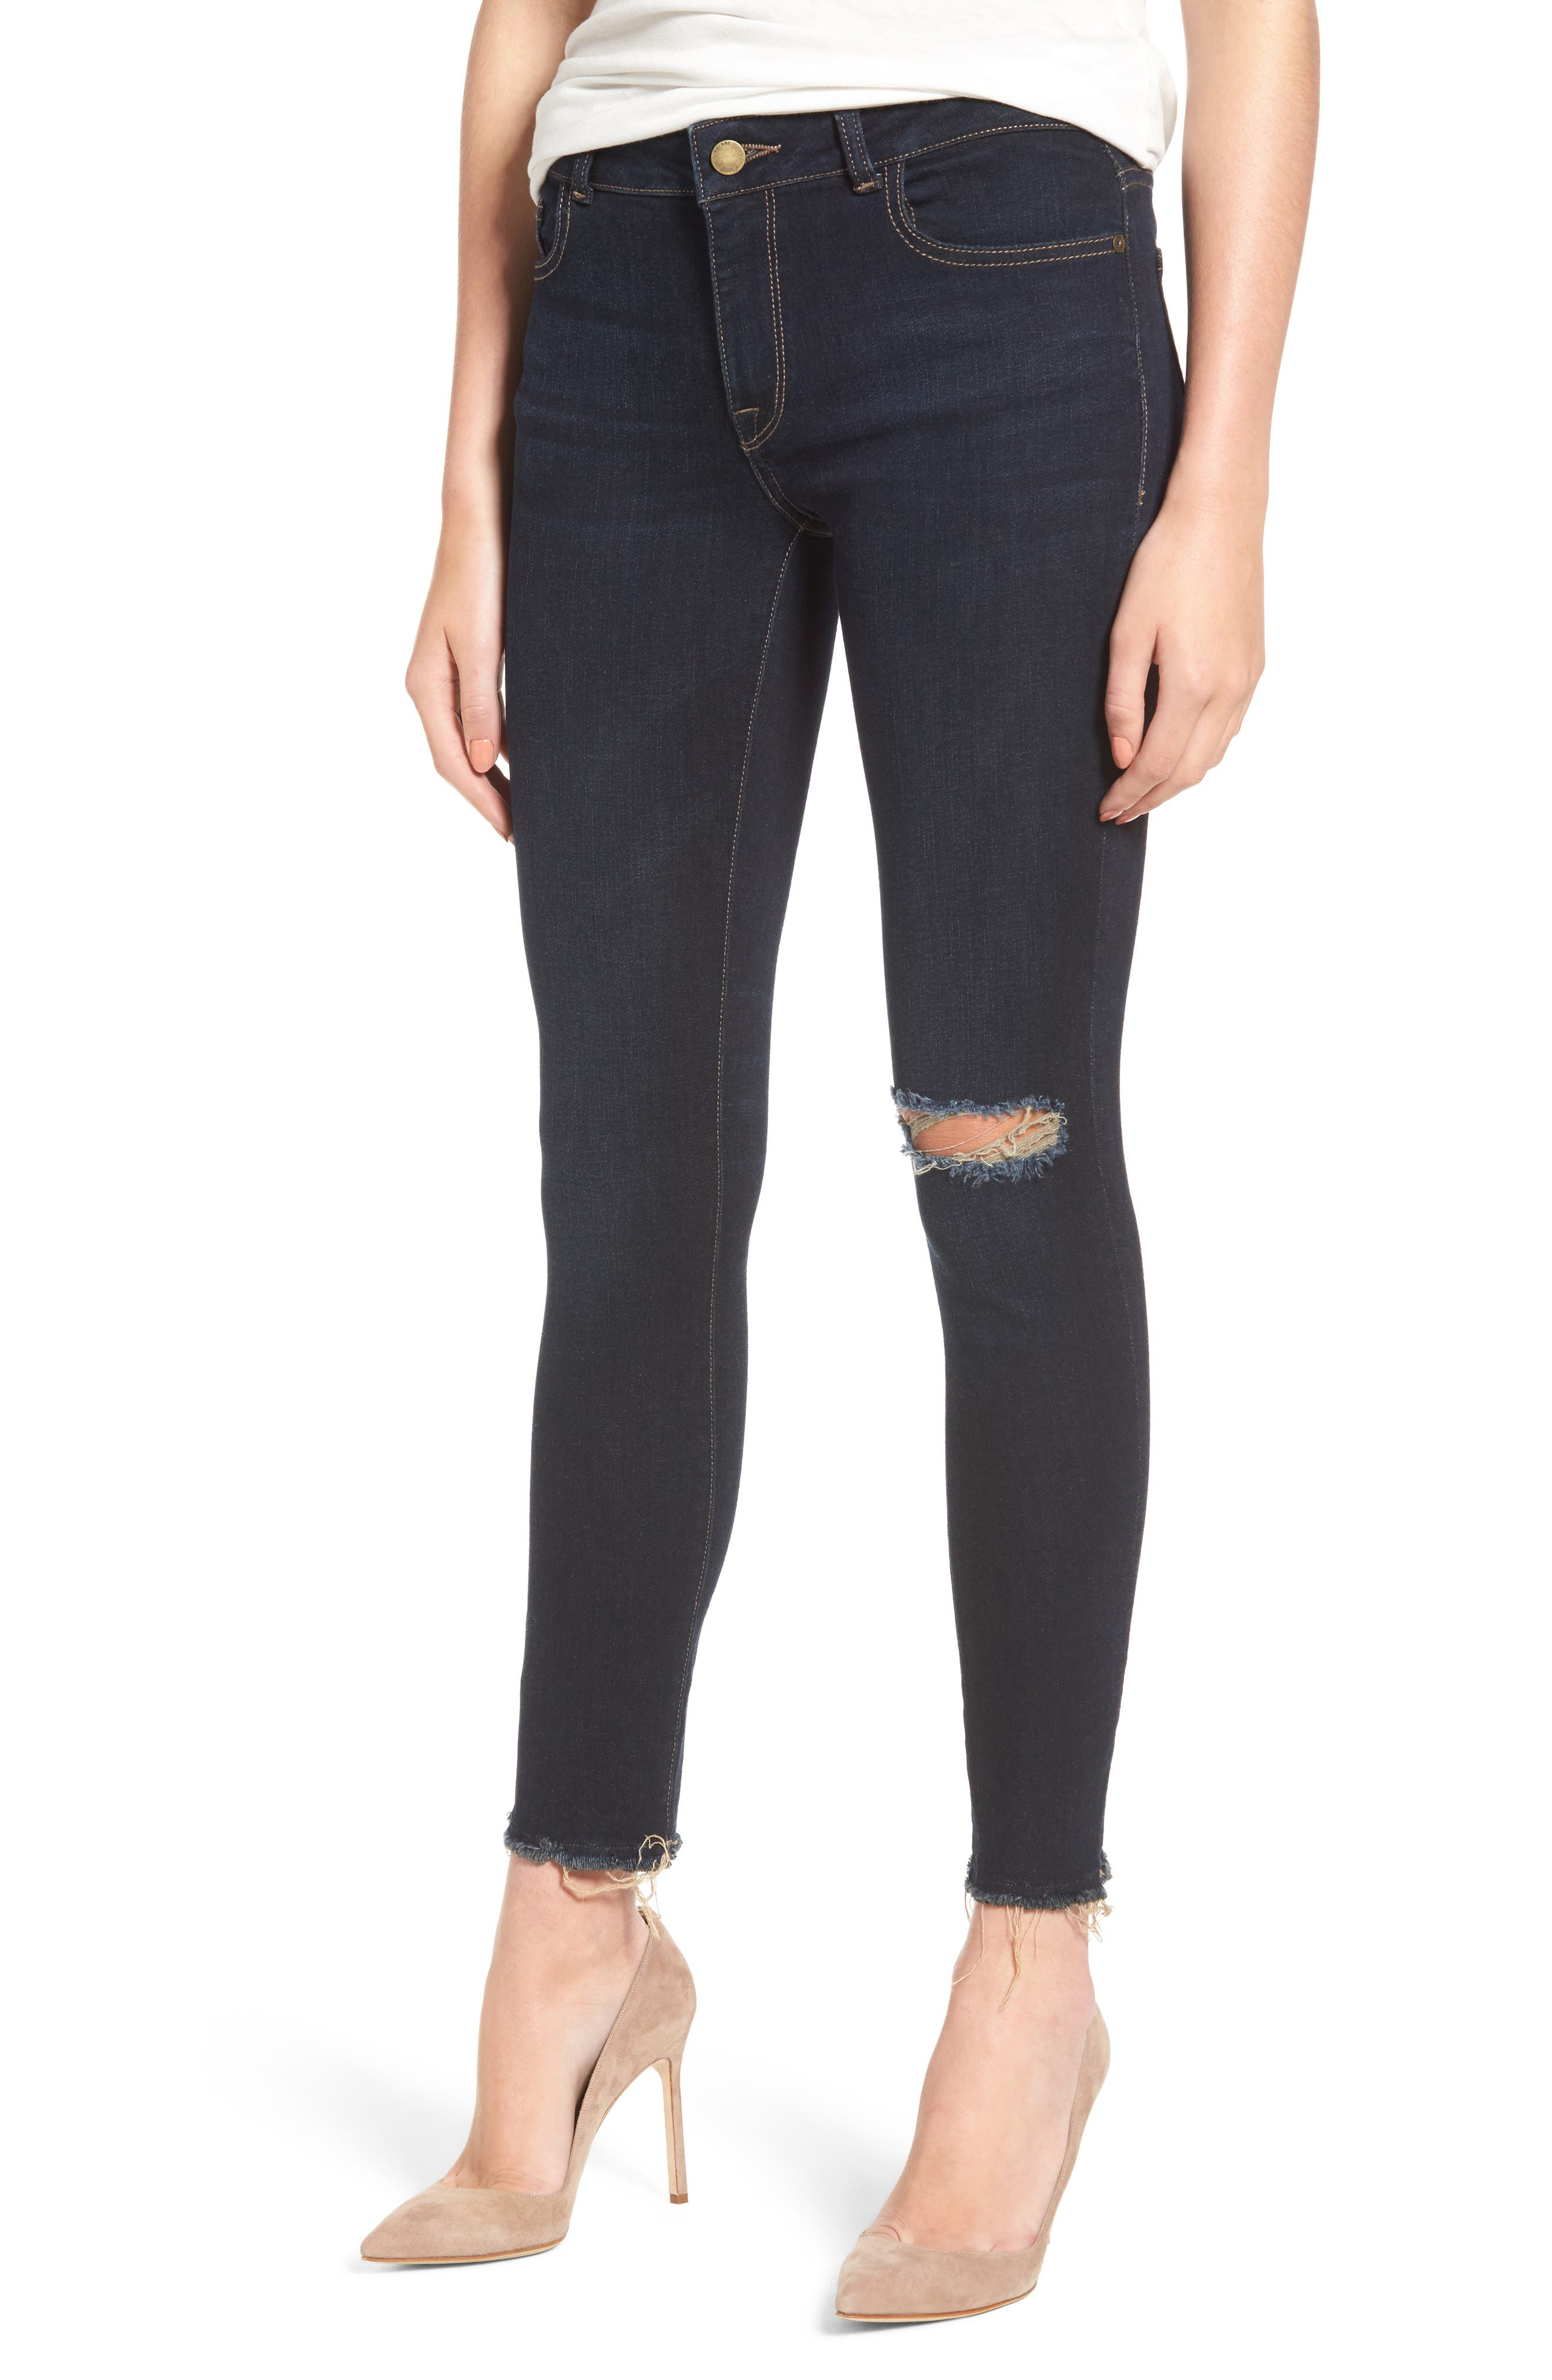 Main Image - DL1961 Margaux Instasculpt Ripped Ankle Skinny Jeans (Halsey)